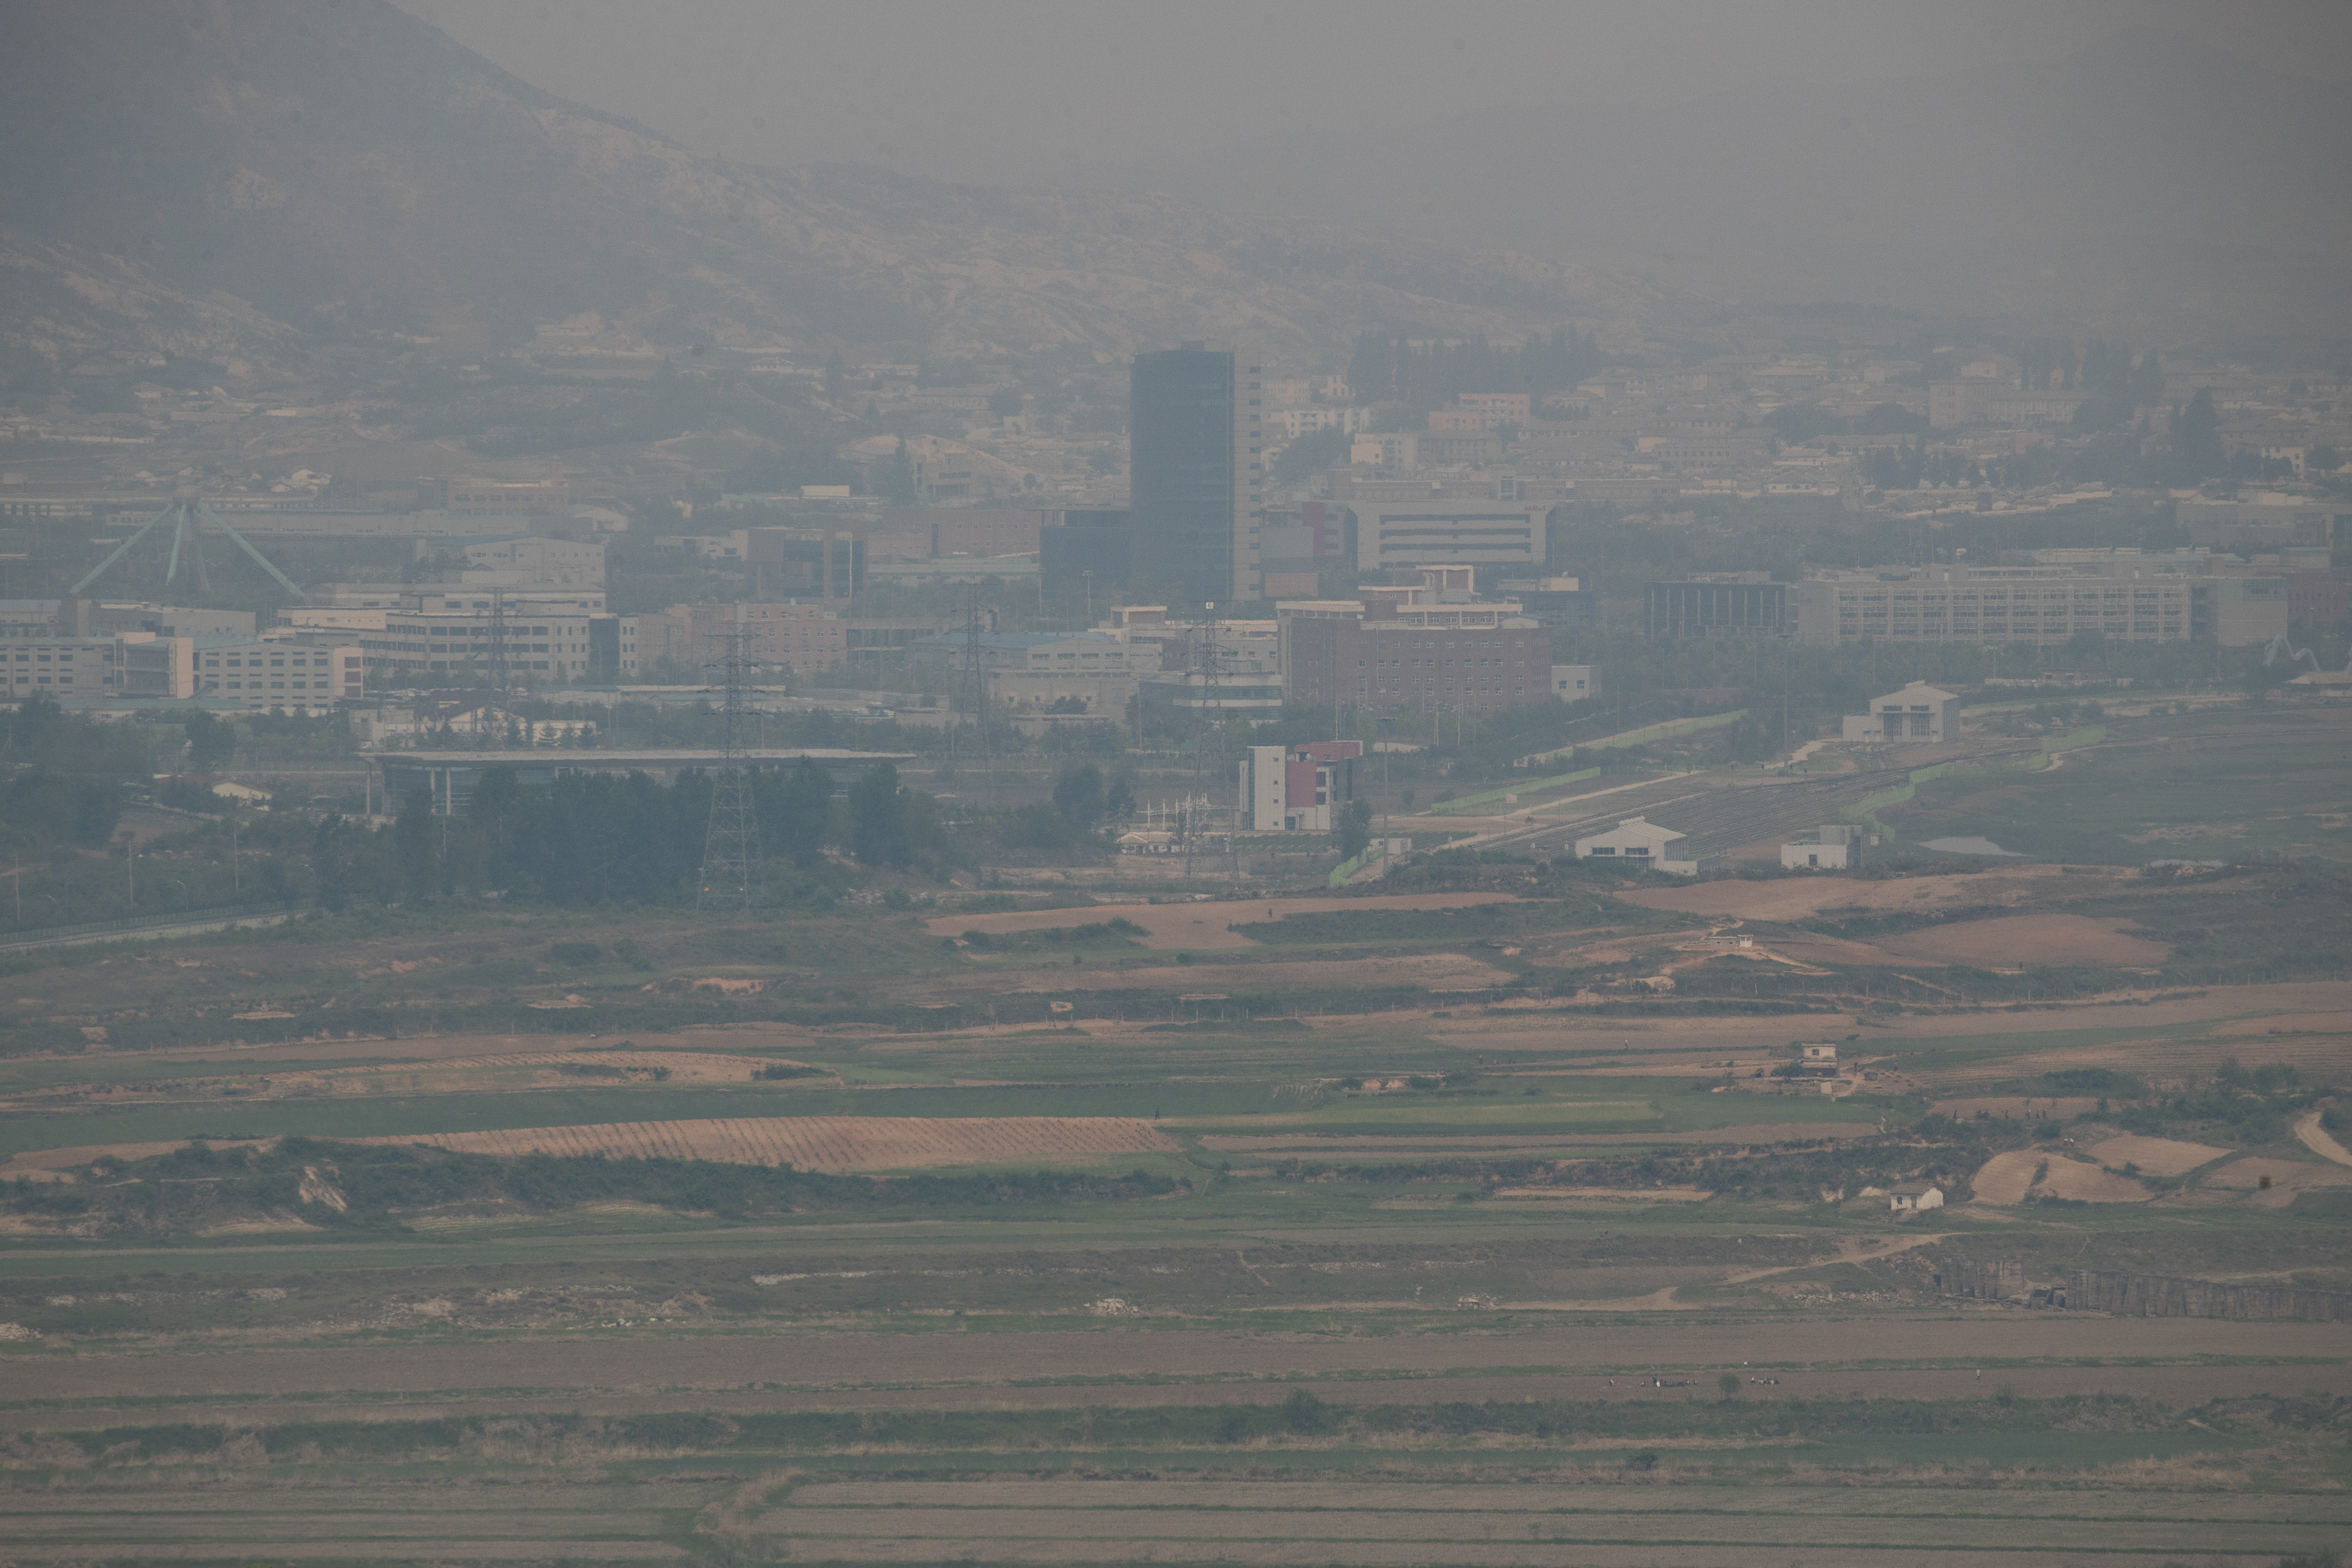 Kaesong Industrial Complex seen from Paju, Gyeonggi Province on May 15th, 2019. <Photo: Yonhap News>